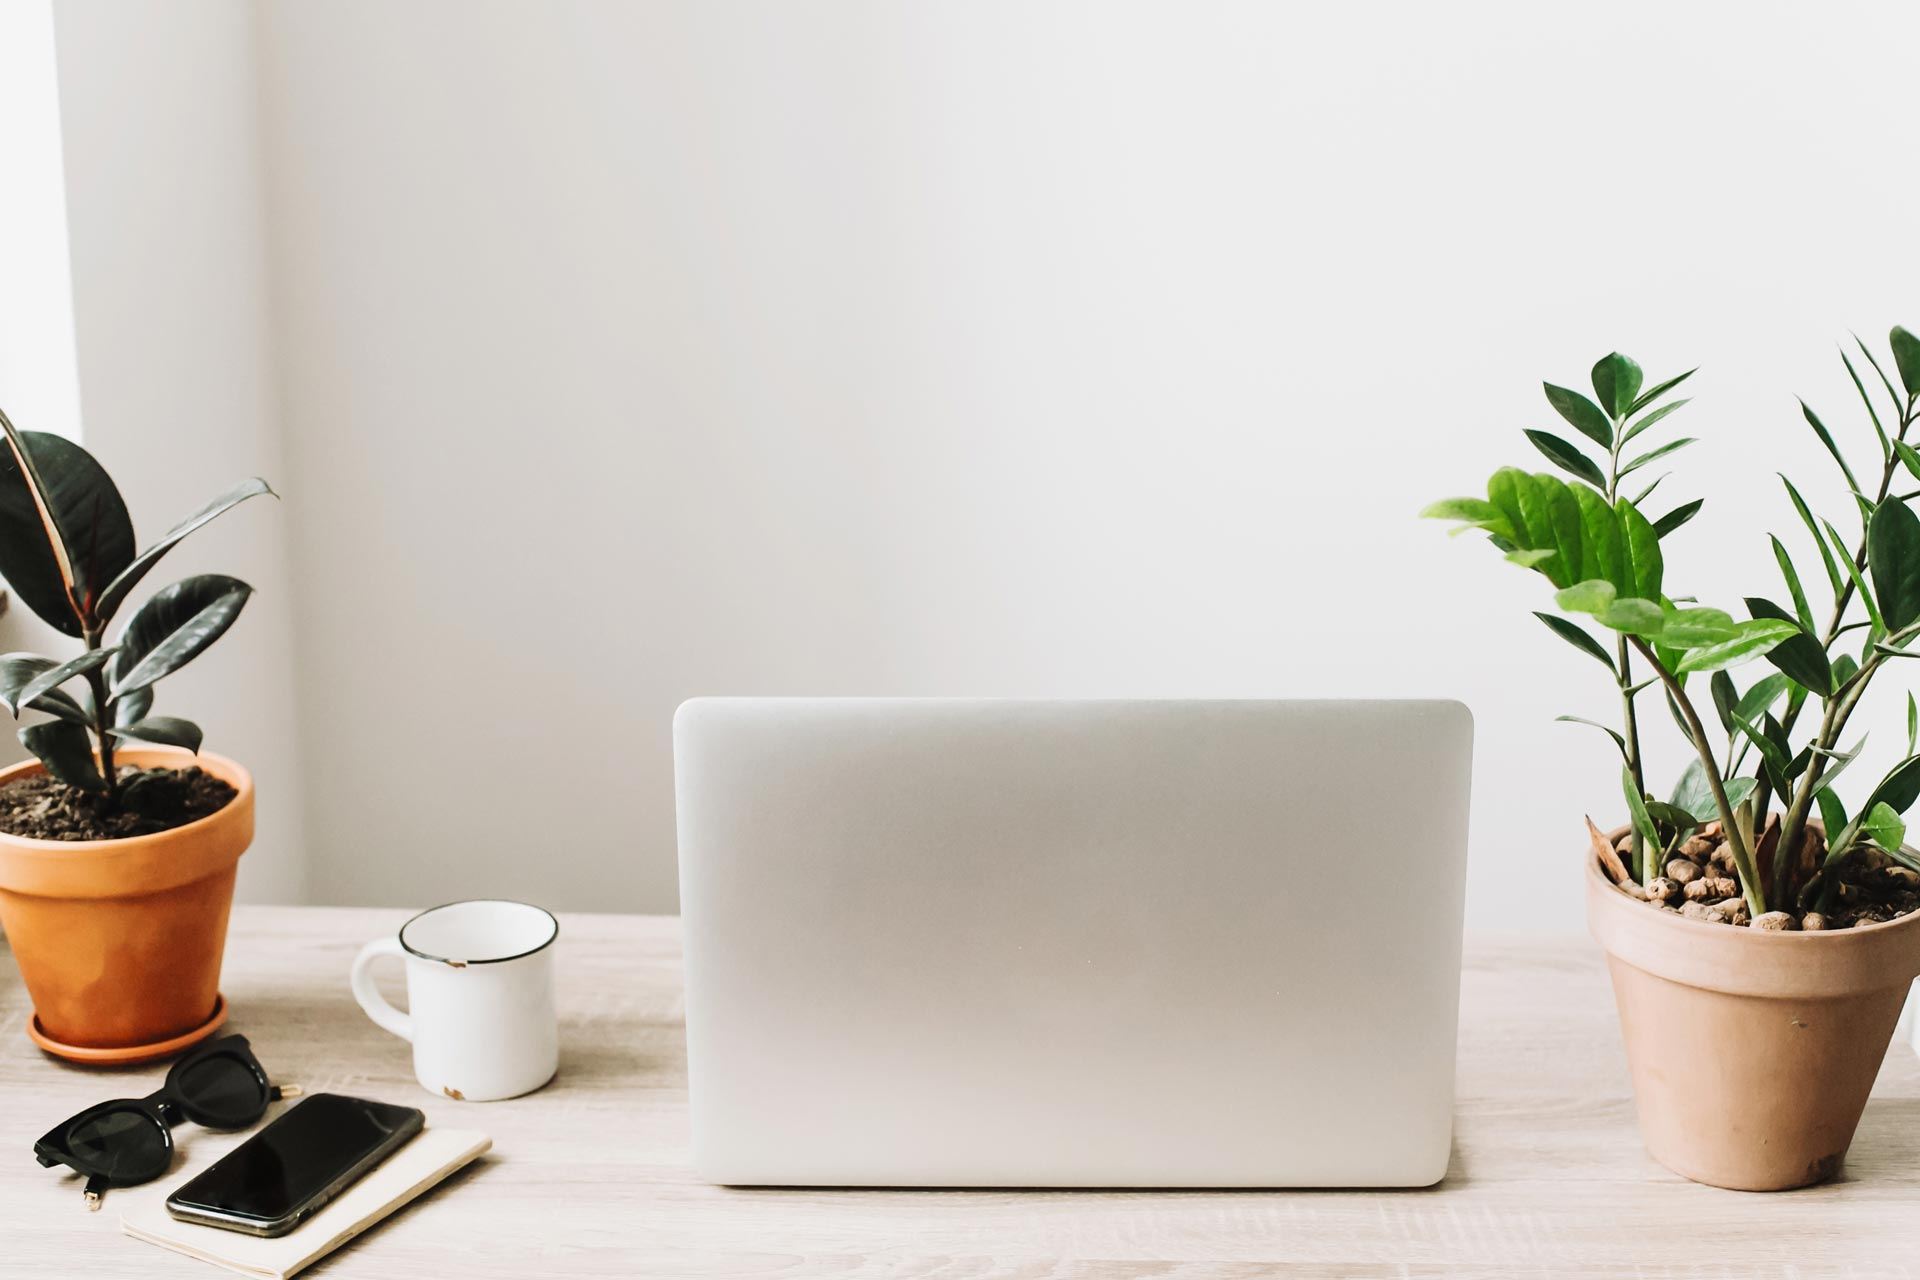 Minimalist lifestyle desk with laptop, potted plants, phone, and coffee mug.